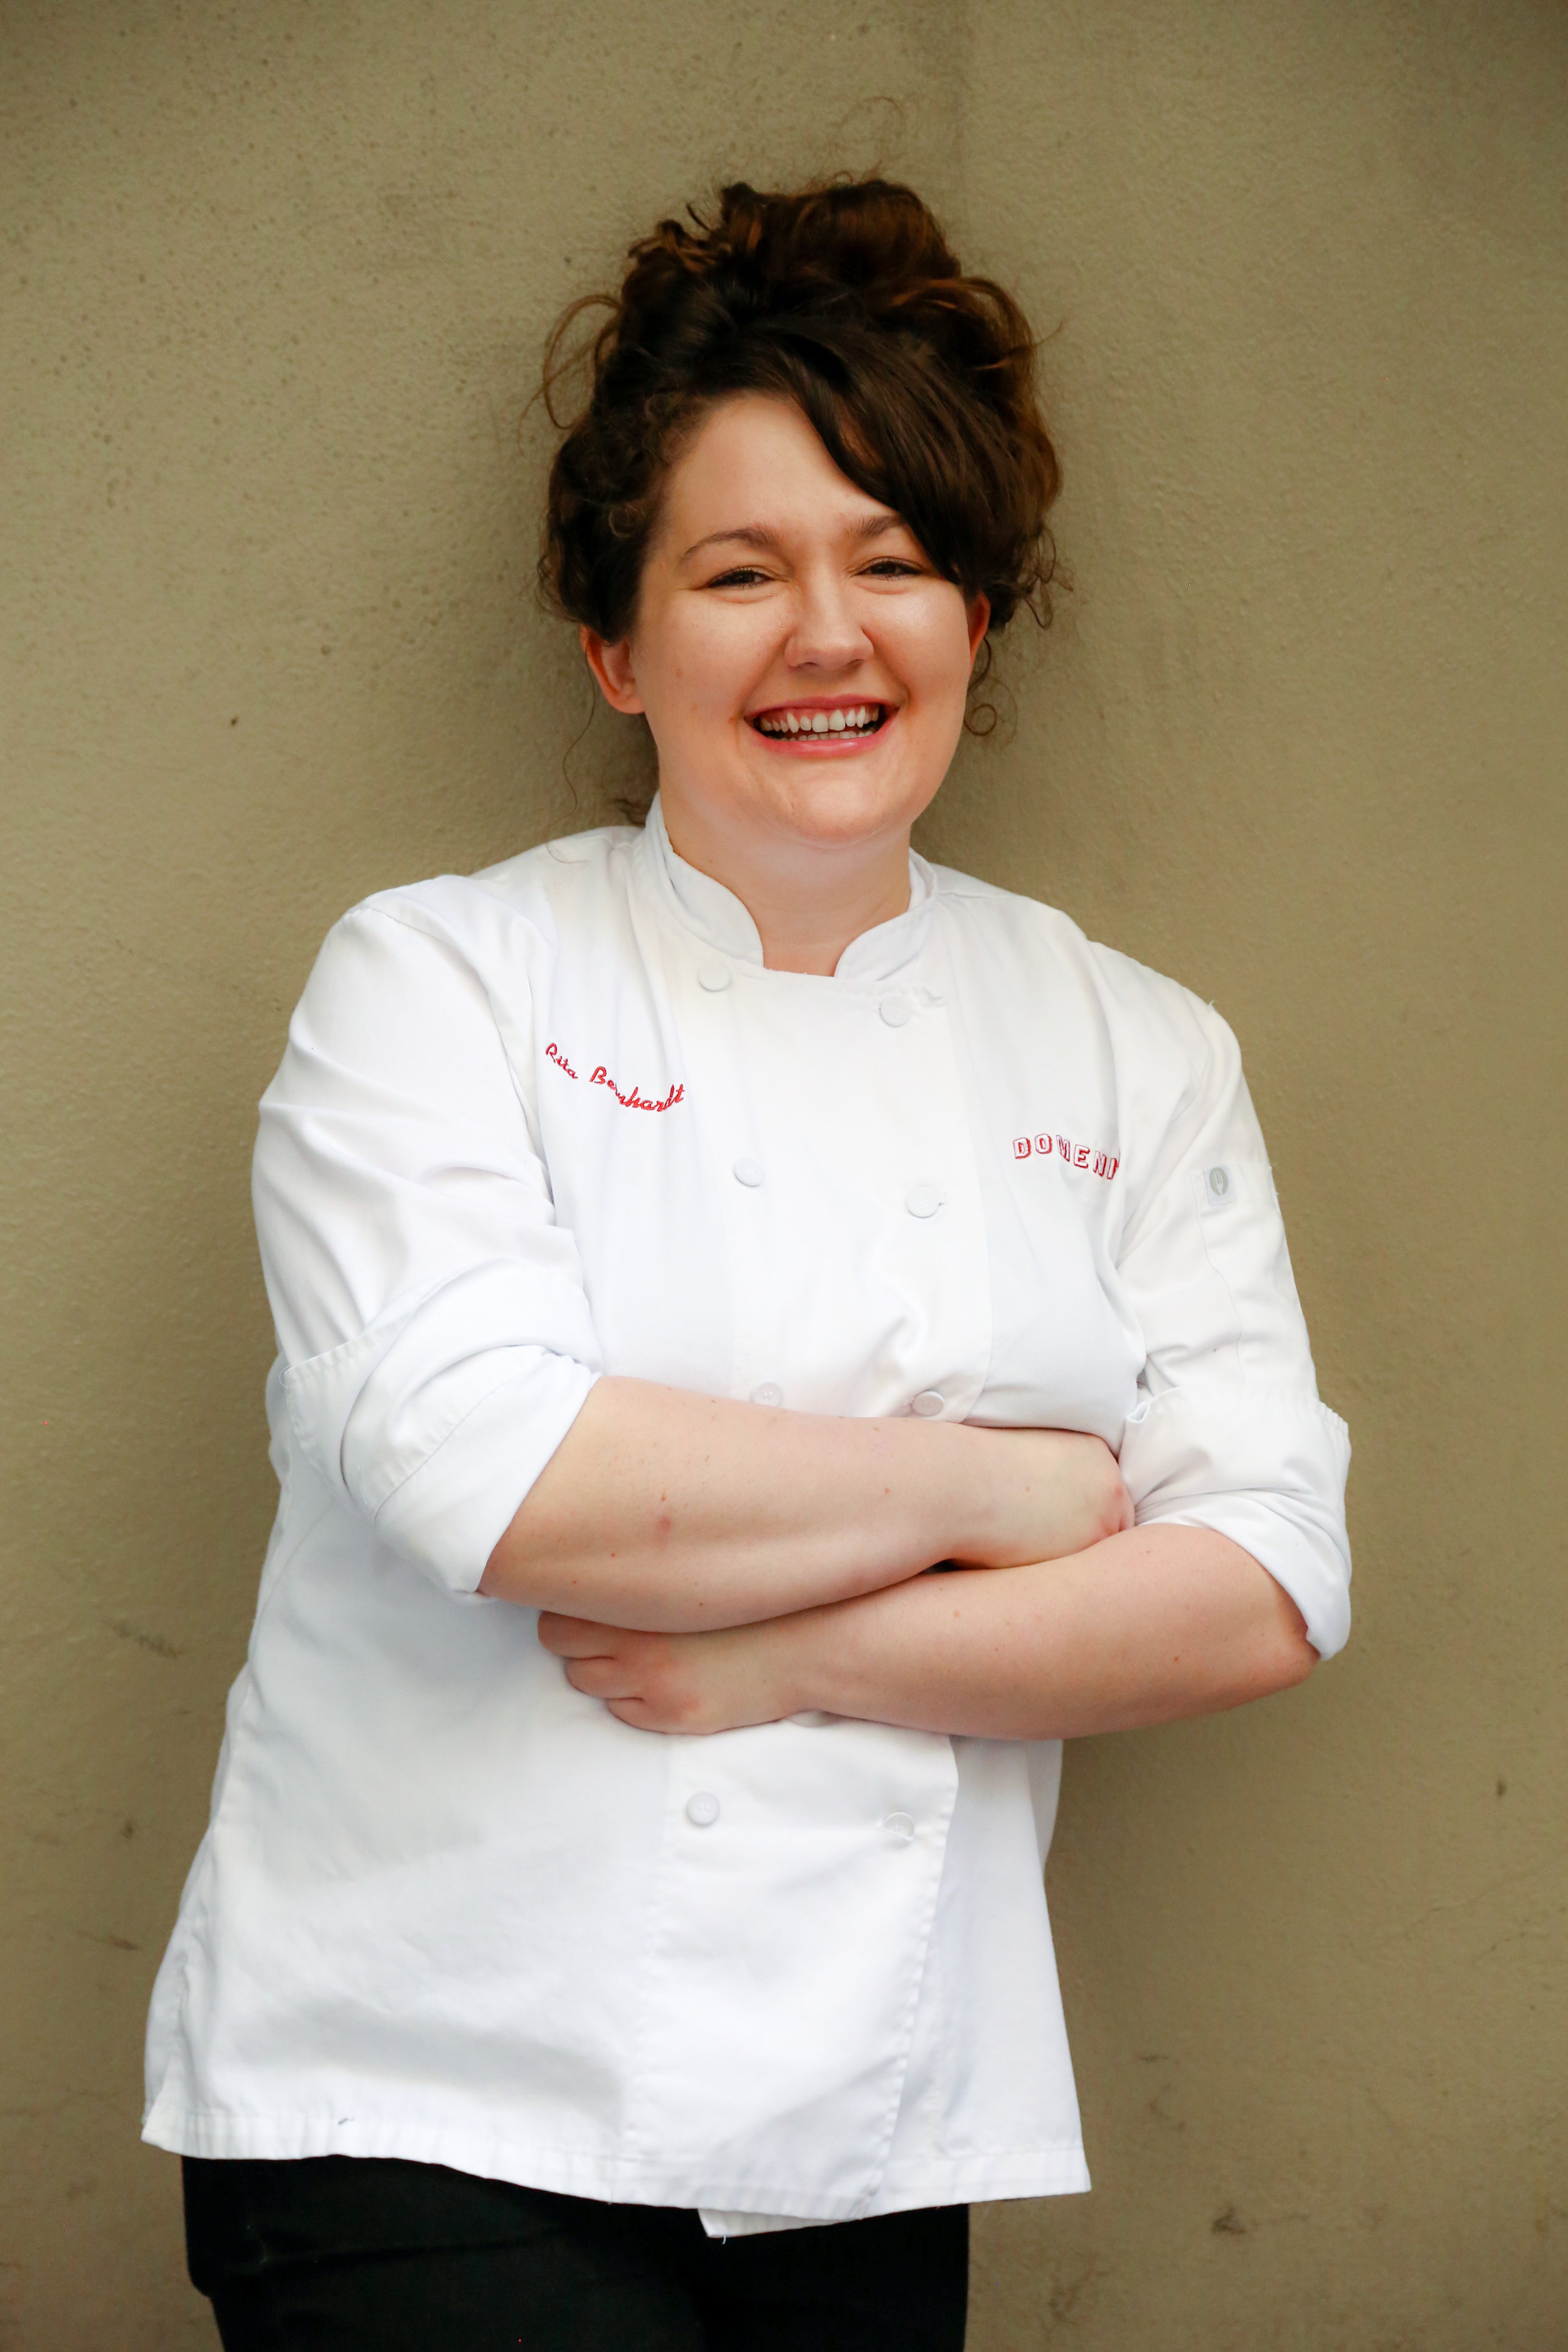 Rita Bernhardt - Executive Chef